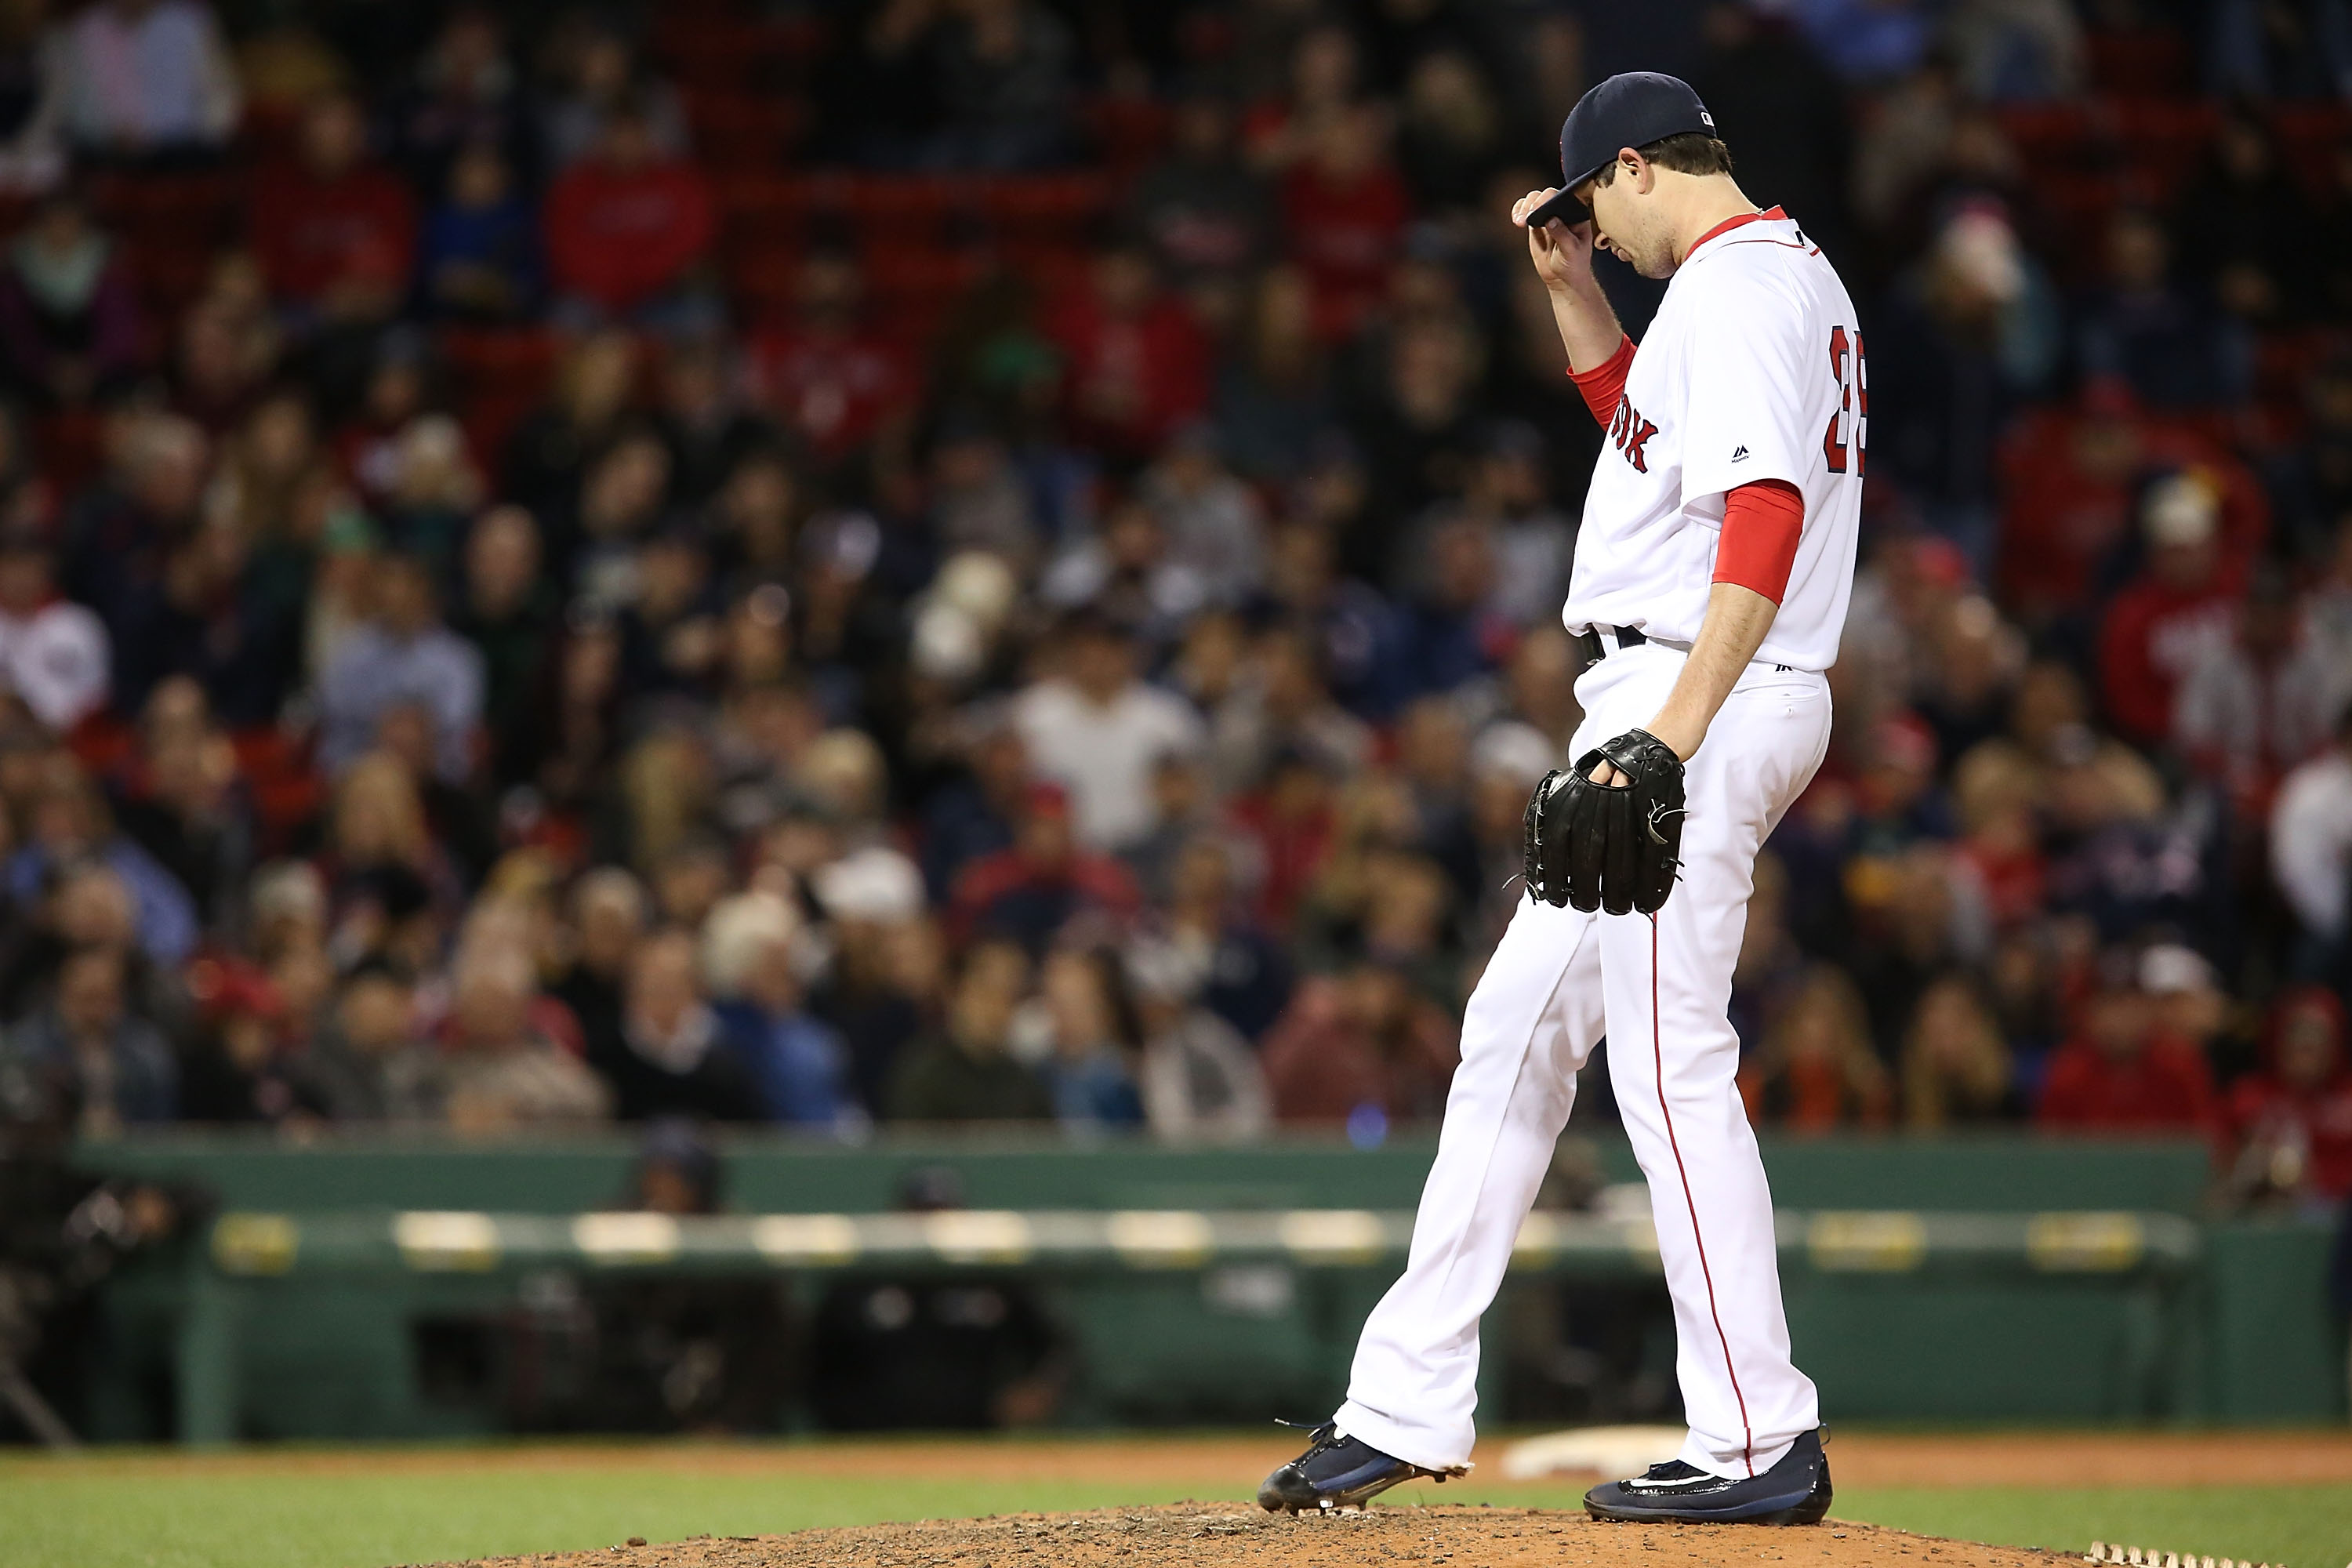 BOSTON, MA - MAY 09:  Carson Smith #39 of the Boston Red Sox looks on in the seventh inning during the game against the Oakland Athletics at Fenway Park on May 9, 2016 in Boston, Massachusetts.  (Photo by Adam Glanzman/Getty Images)